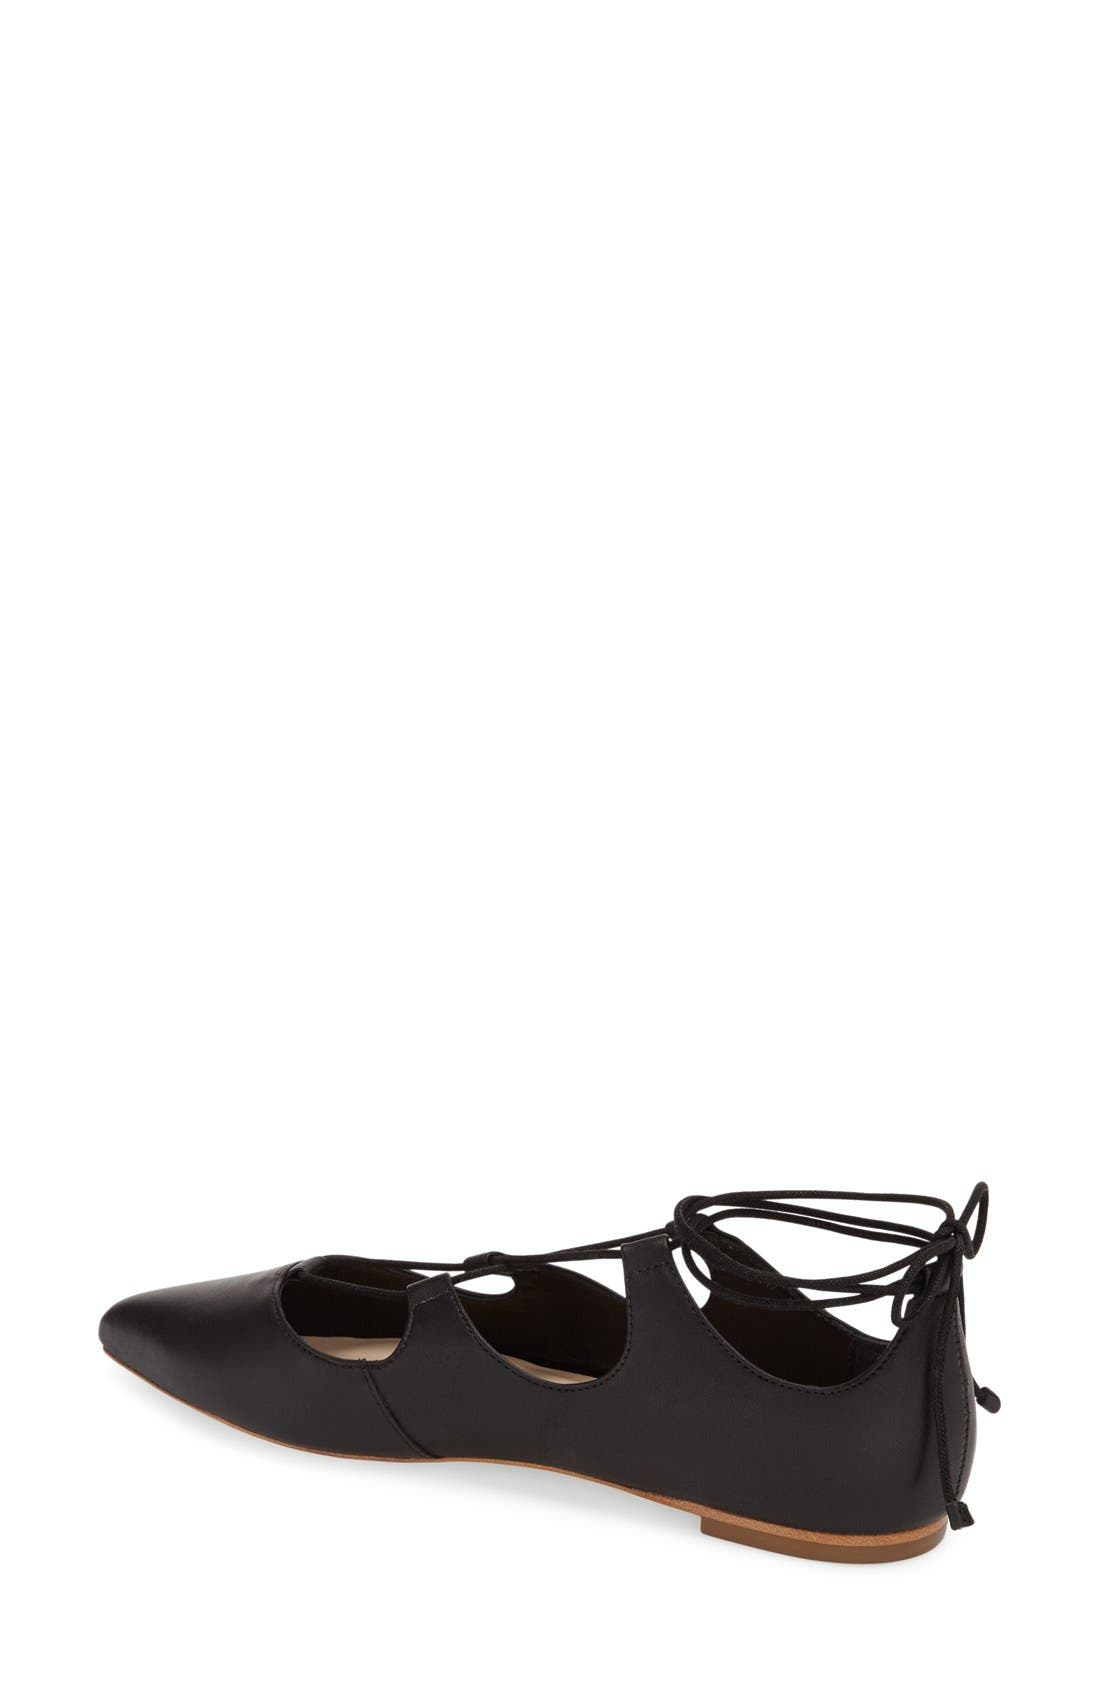 Alternate Image 2  - Loeffler Randall 'Ambra' Pointy Toe Ghillie Flat (Women)